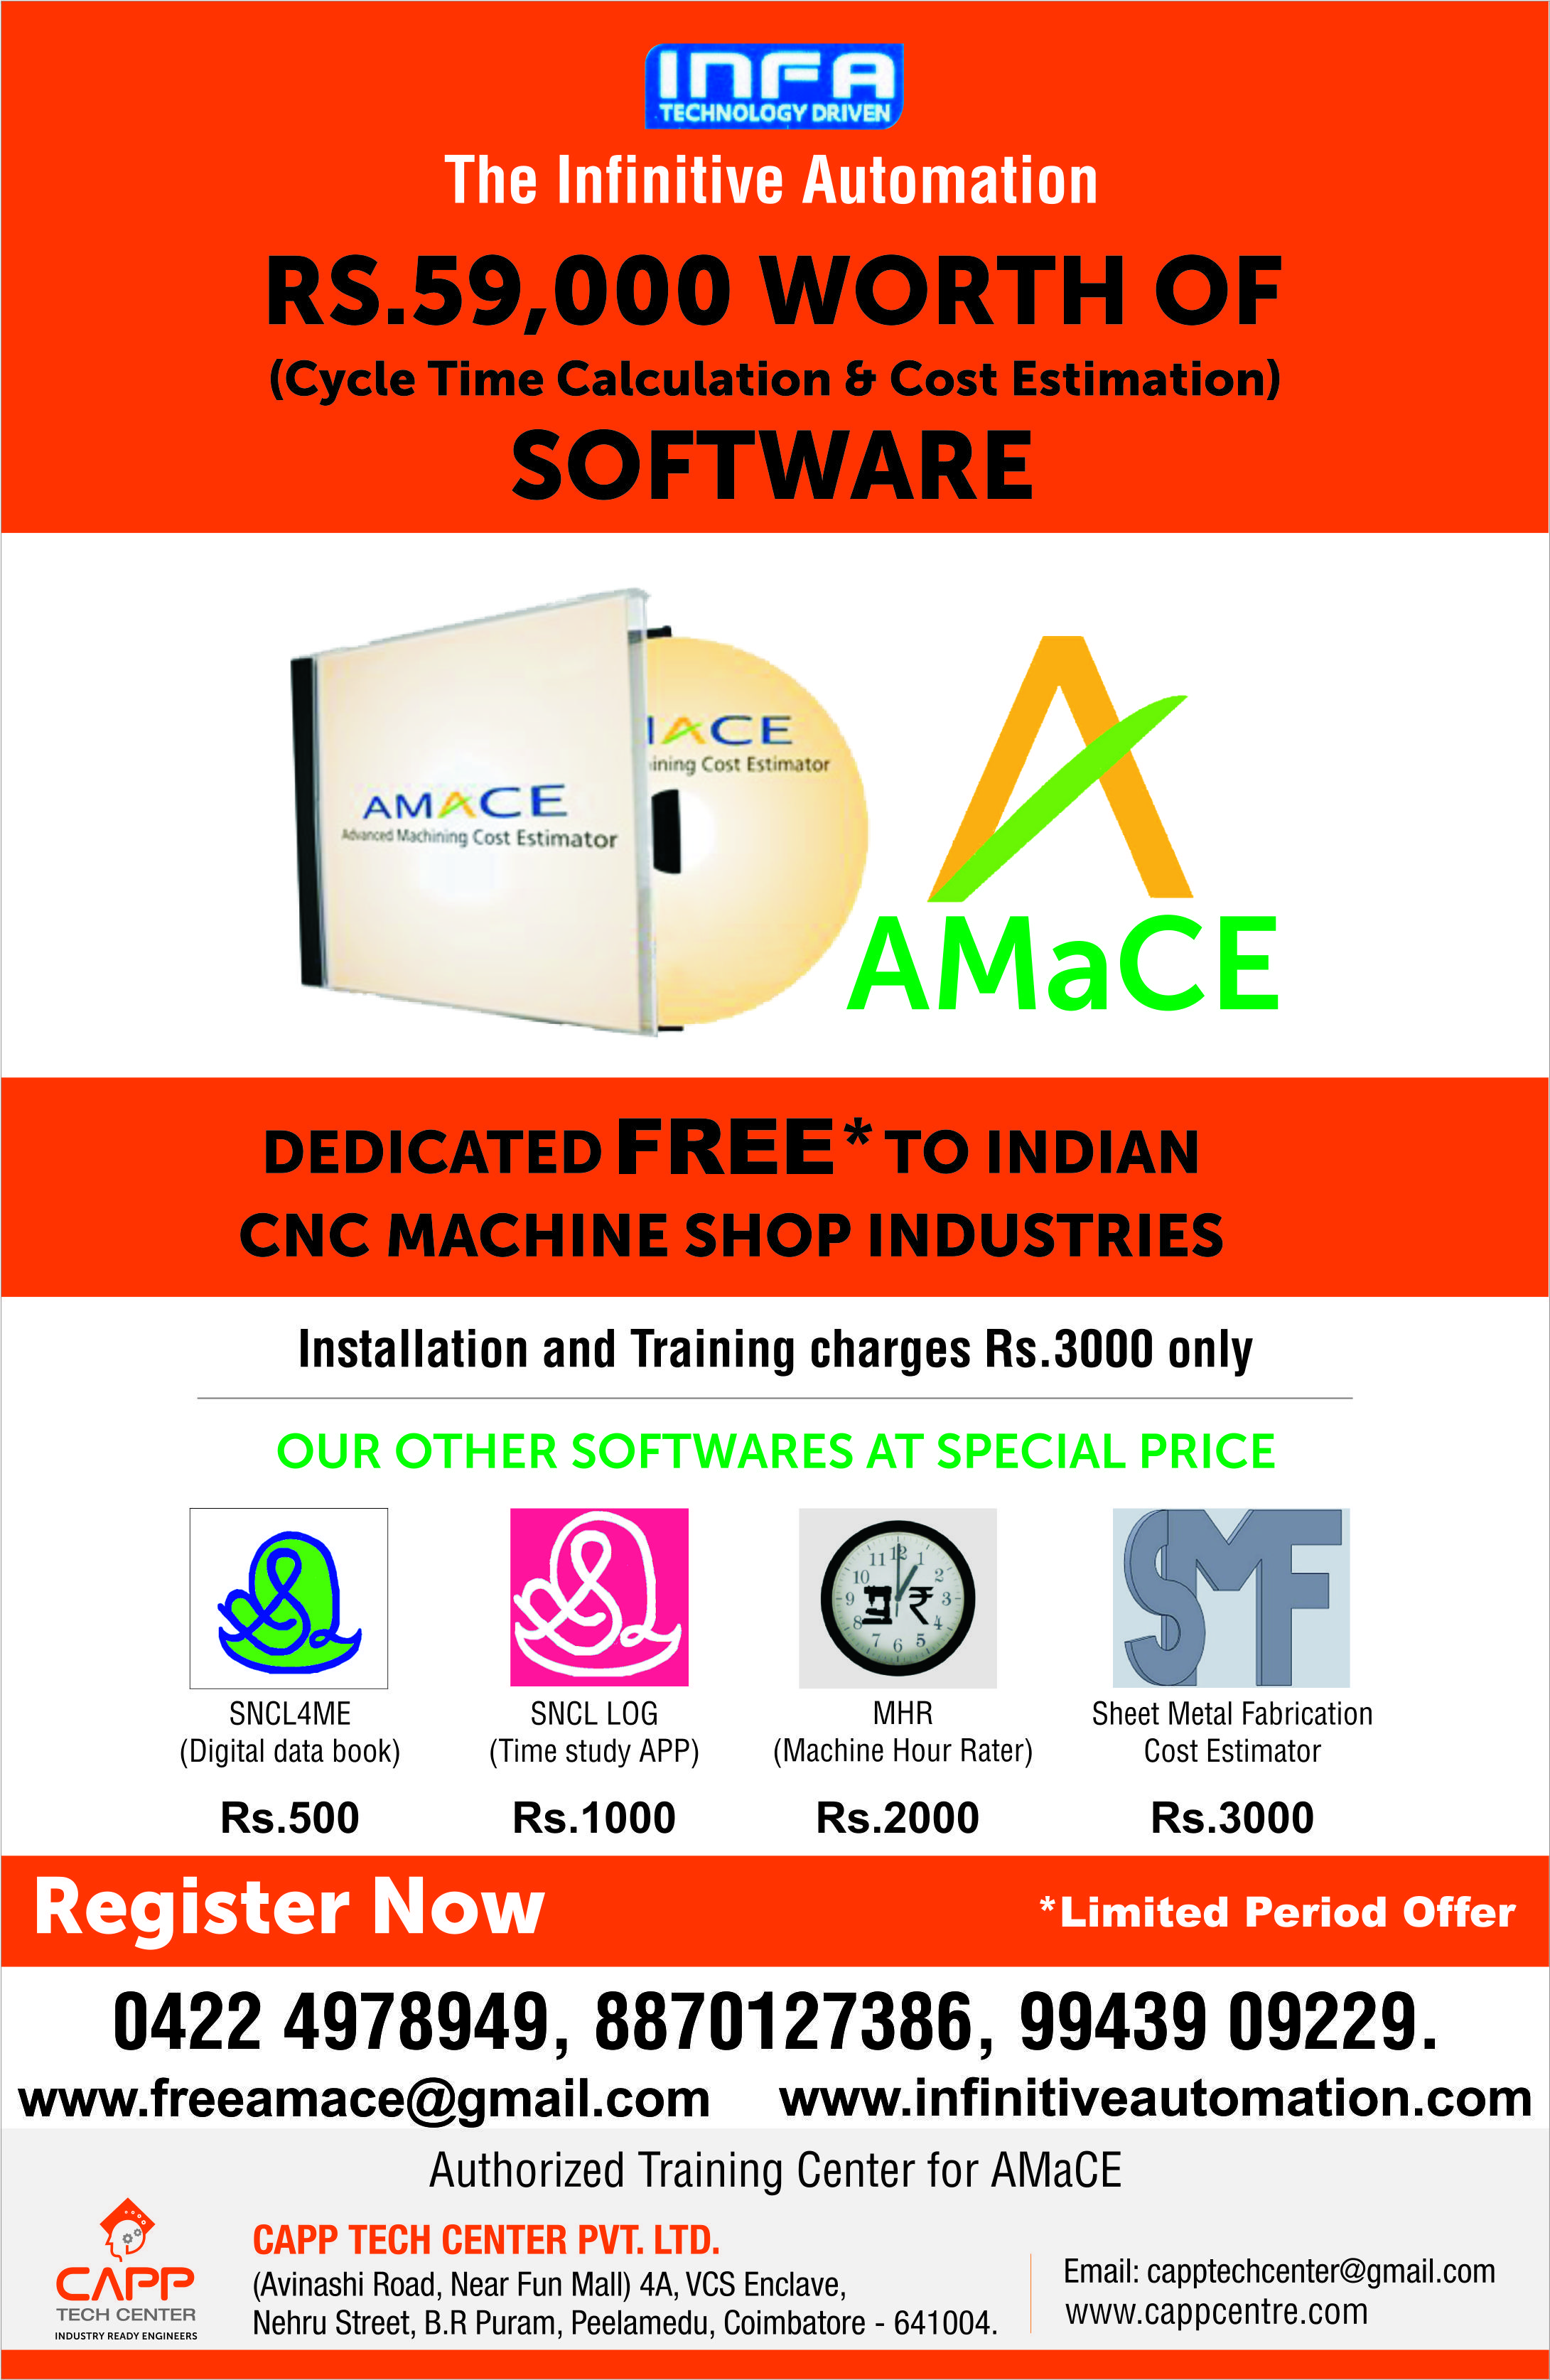 We The Infinitive Automation Provide Solutions for Cost